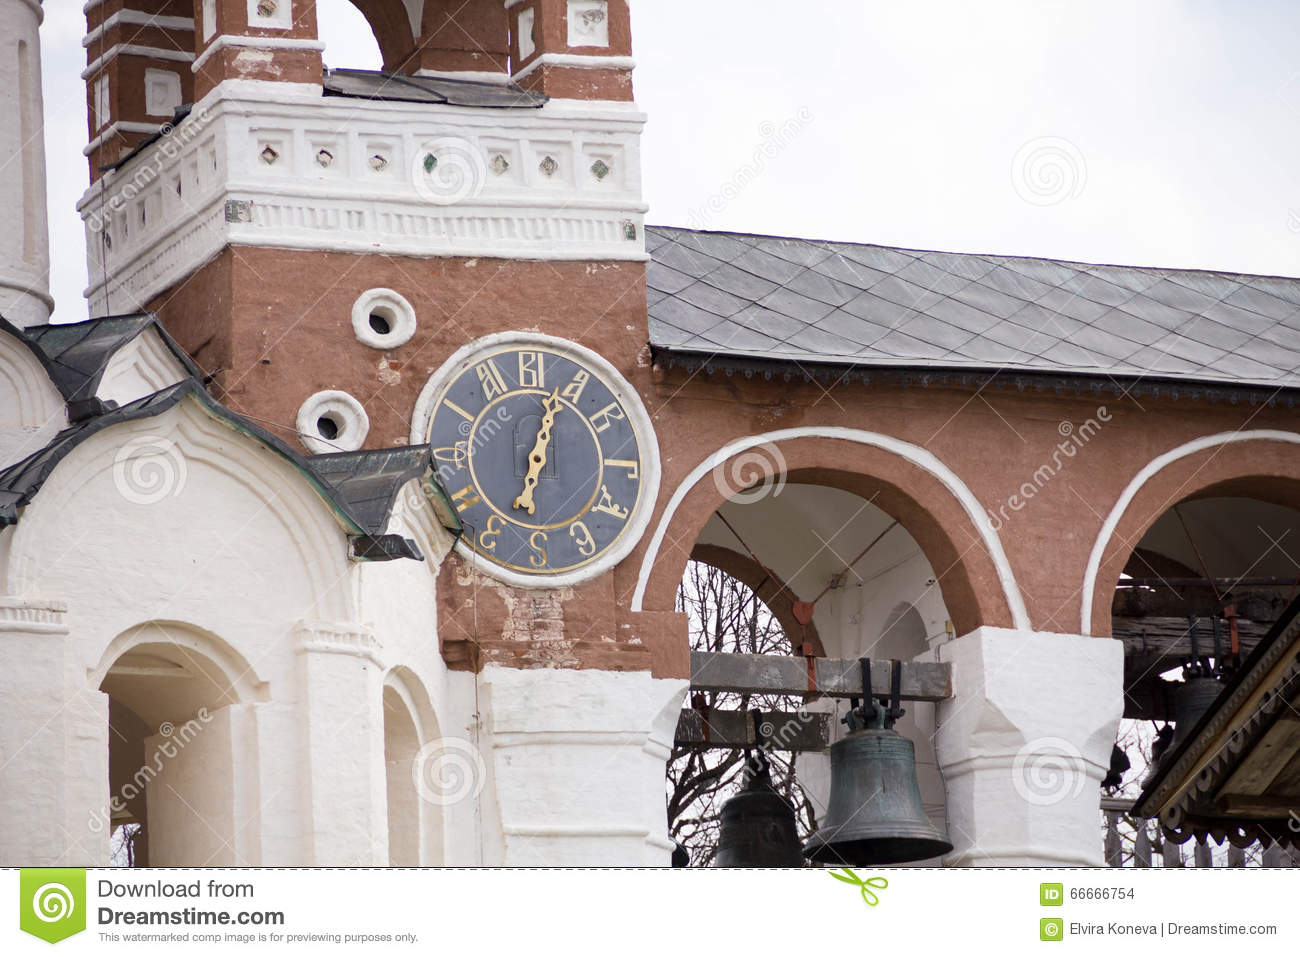 Download The Ancient Clock On The Wall Of The Church, City Suzdal, Golden Ring Of Russia Stock Photo - Image of face, church: 66666754